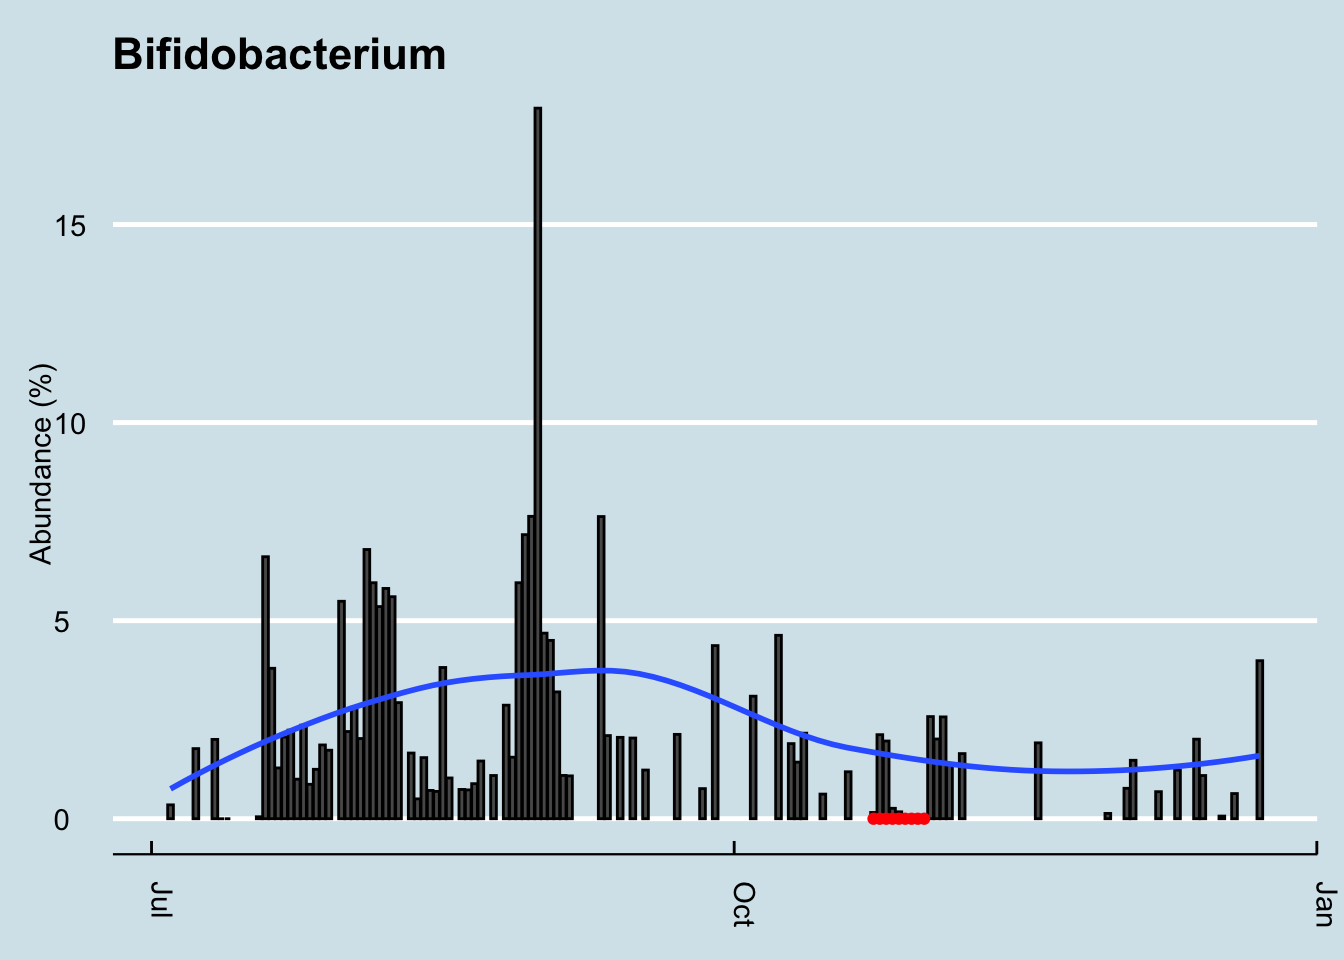 Bifidobacterum levels over time.  Red dots indicate period of taking probiotic supplements.